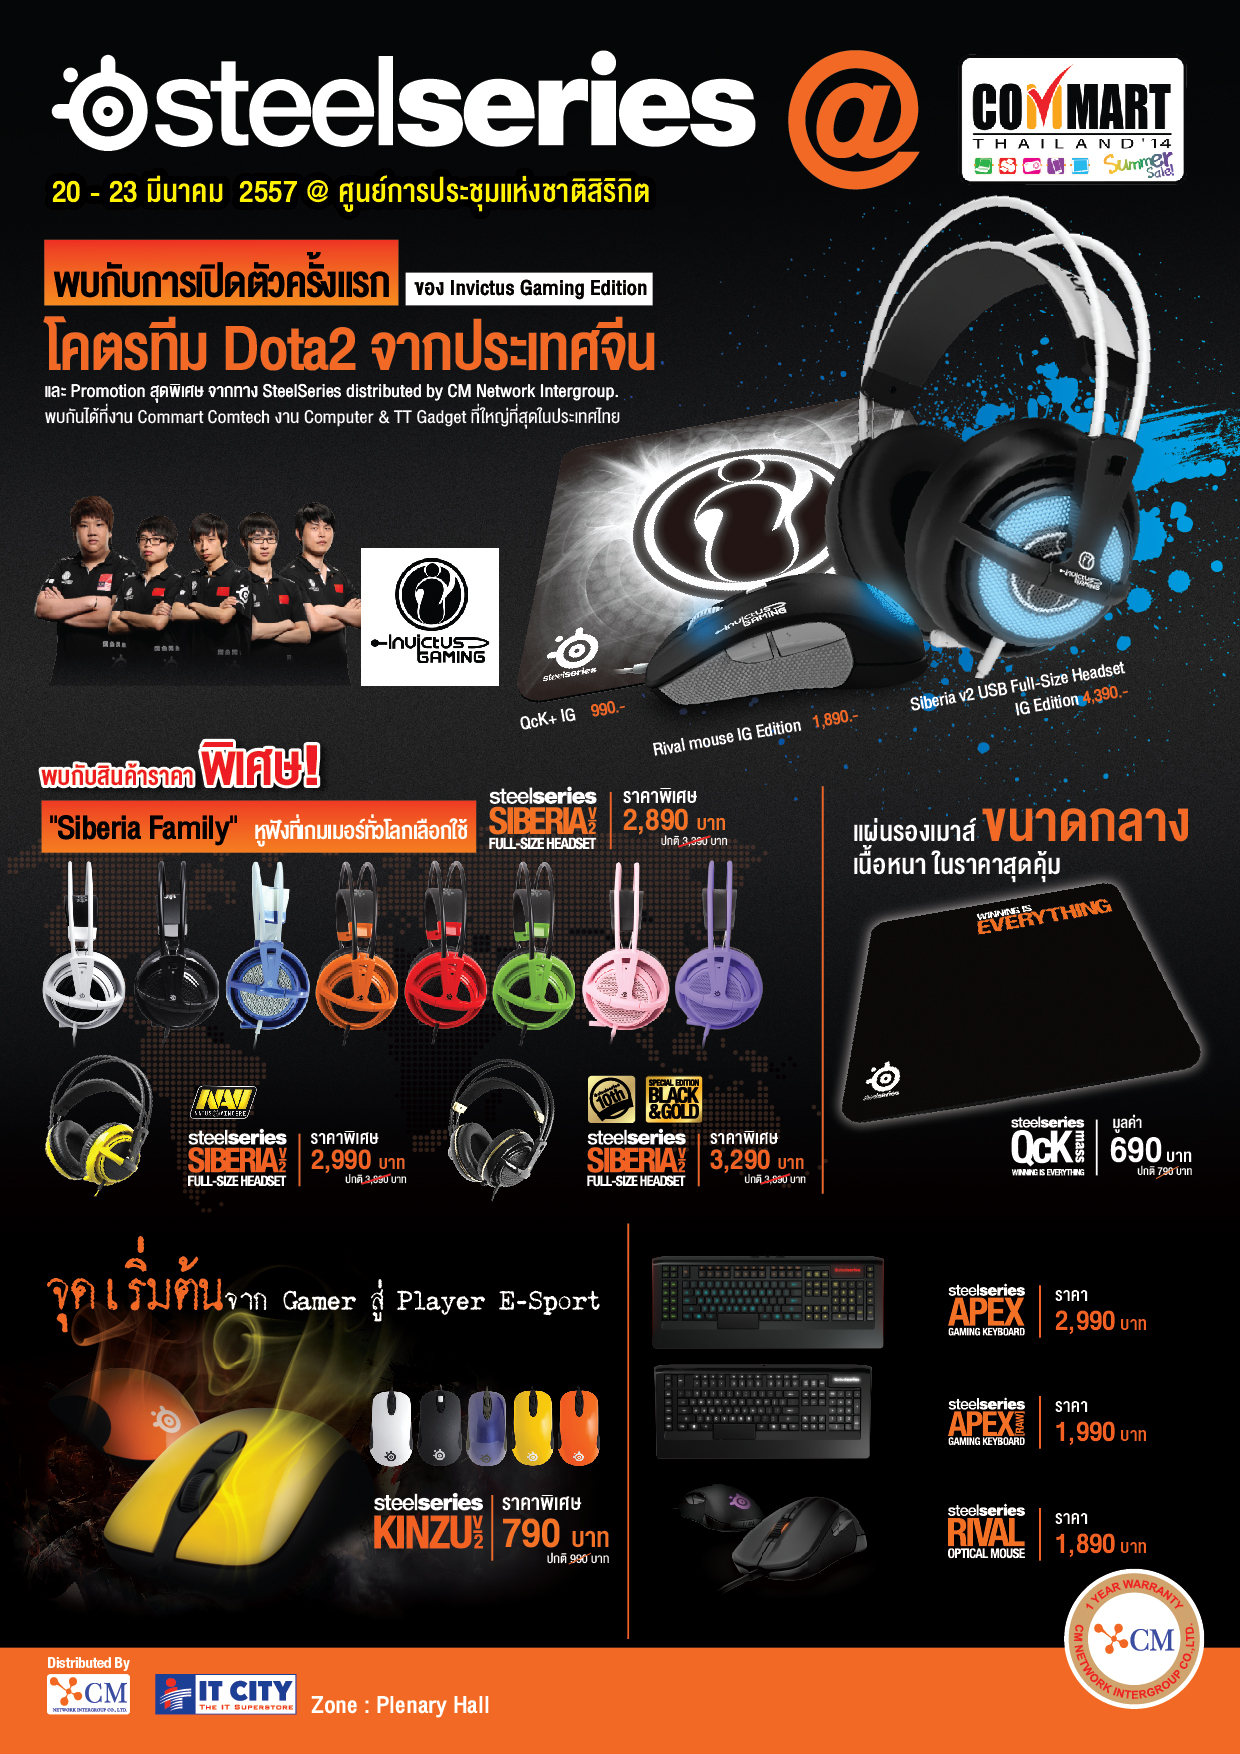 STEELSERIES PROMOTIONS